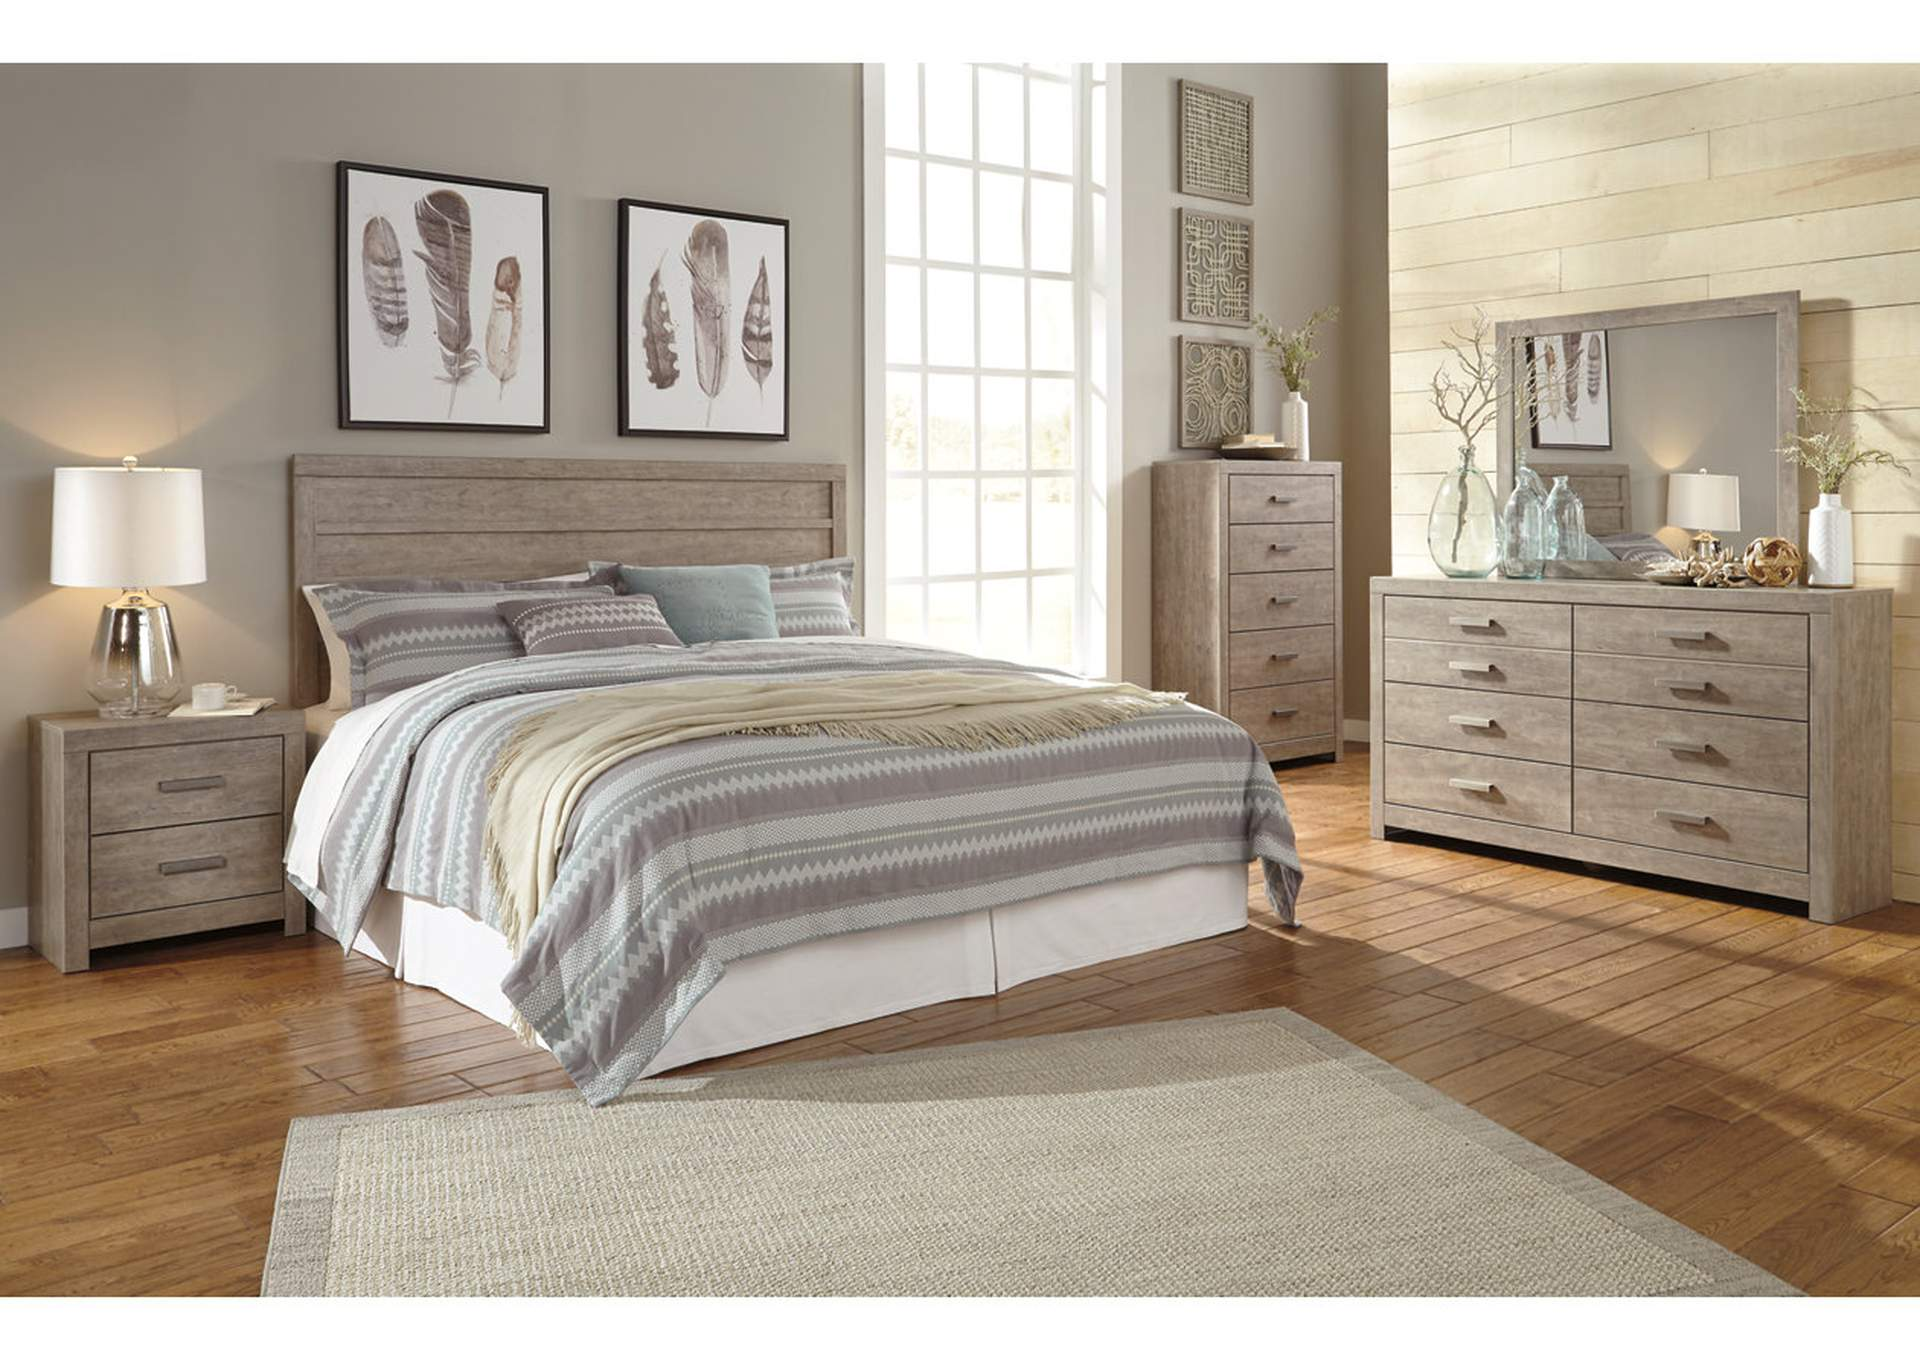 Atlantic Bedding And Furniture Fayetteville Culverbach Gray King Panel Bed W Dresser Mirror